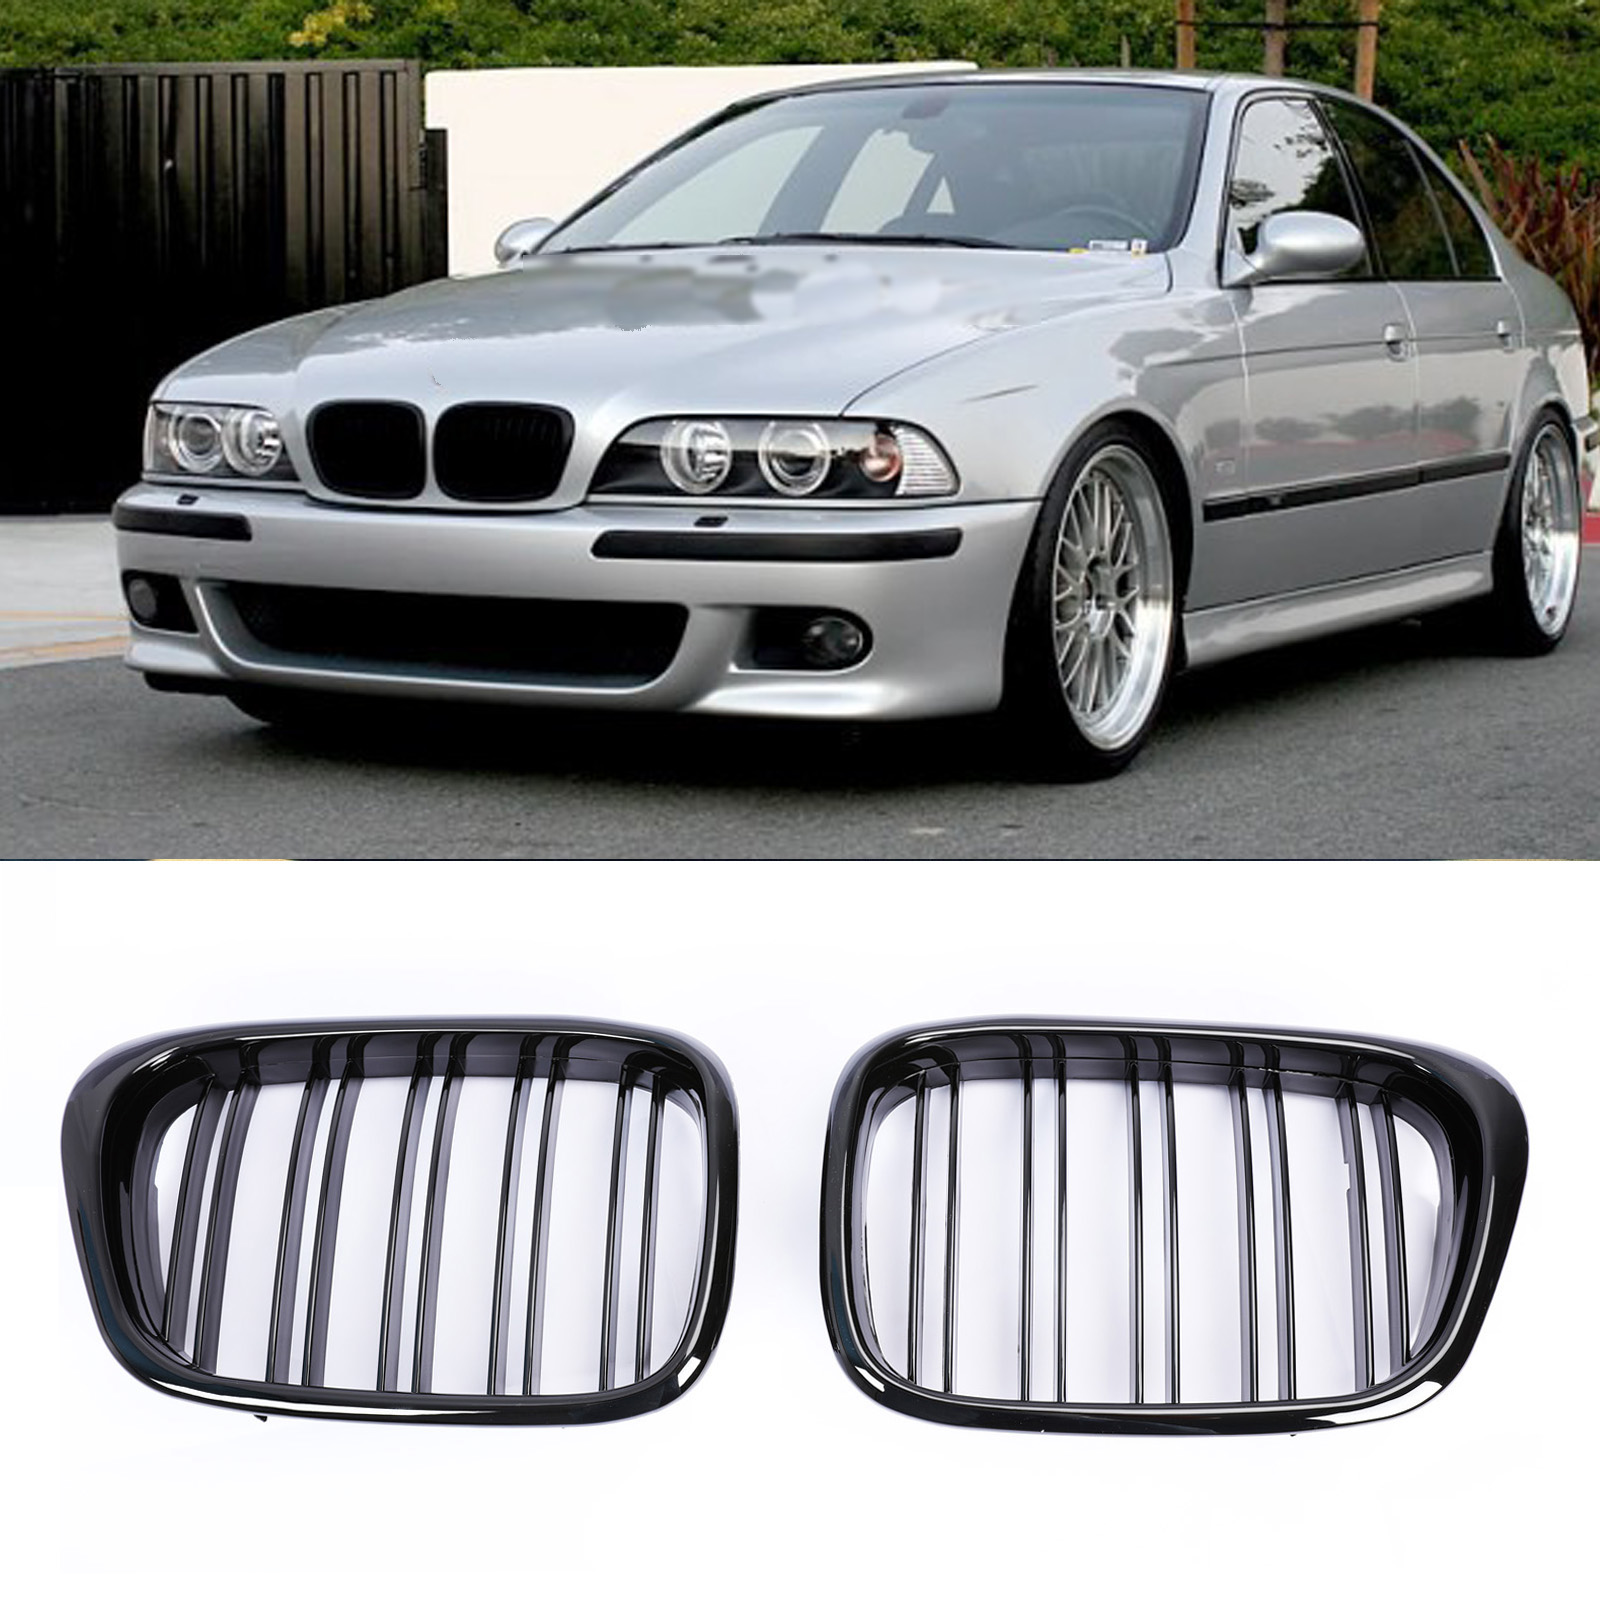 Front Center Grill Black LEFT Fits BMW 5-Series E39 2000-2003